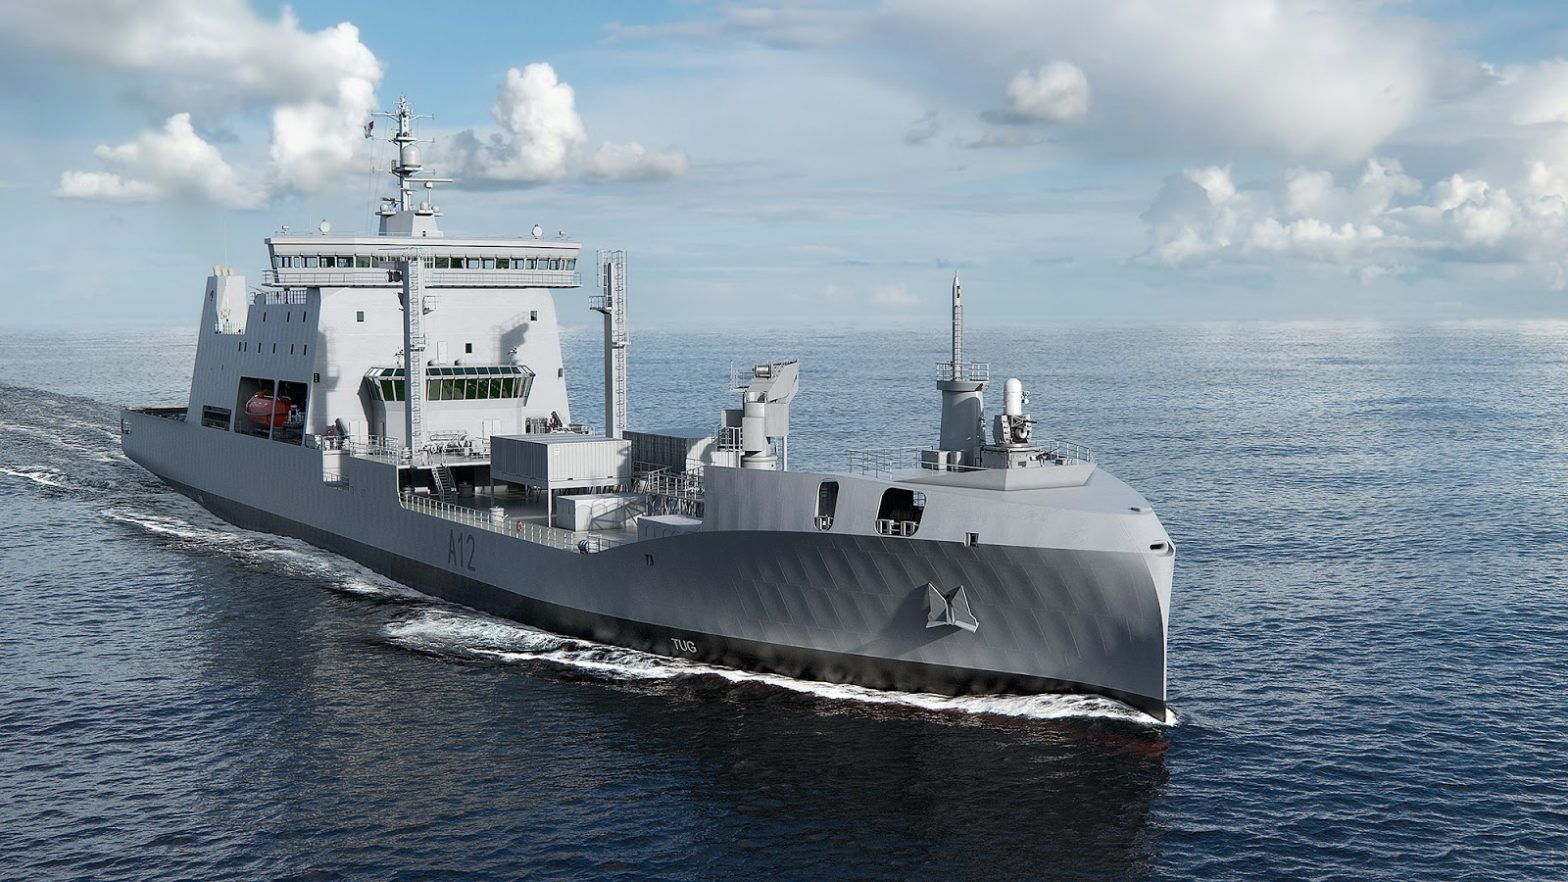 Royal New Zealand Navy names its largest vessel HMNZS Aotearoa